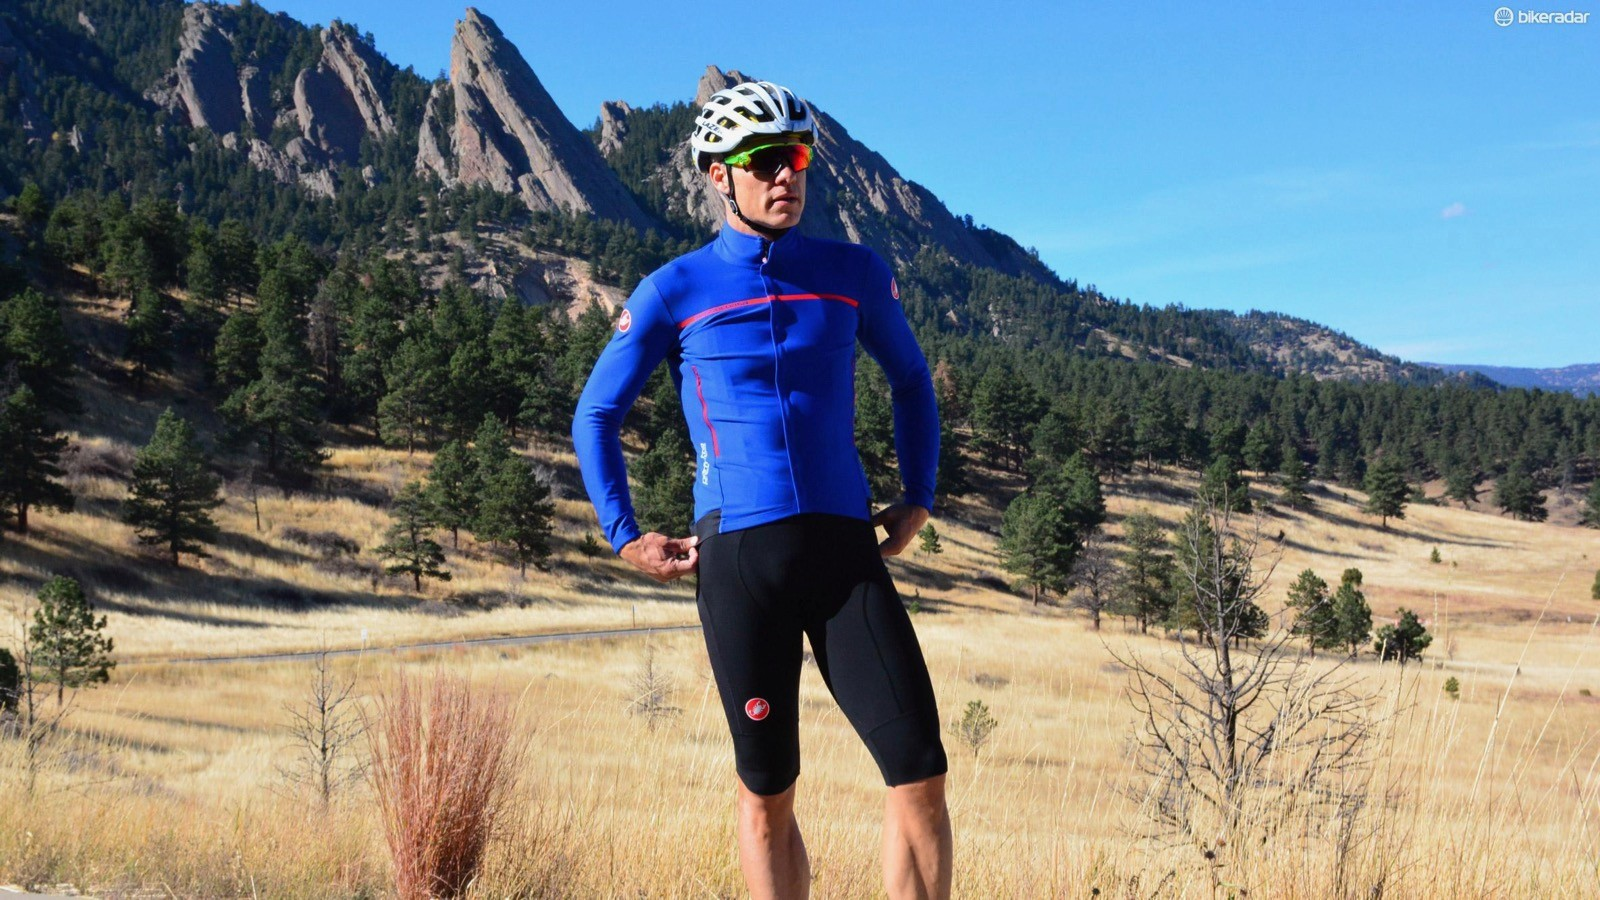 Maybe it's because I'm getting old and soft, but on cool to cold days I really appreciate clothing with Windstopper, like Castelli's Perfetto here in blue